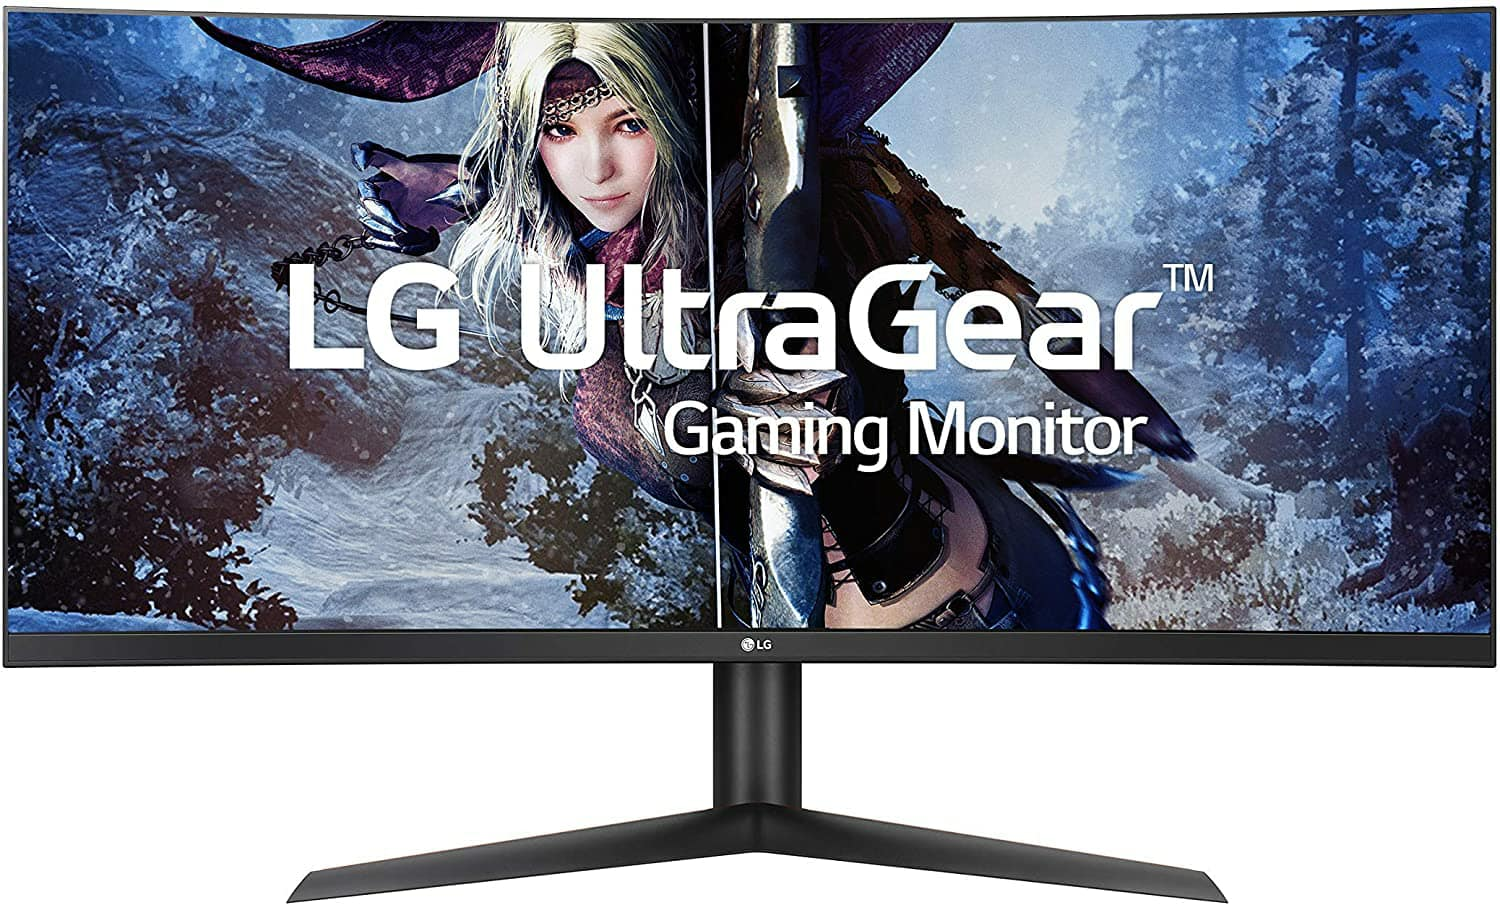 Amazon.com: LG 38GL950G-B 38 Inch UltraGear Nano IPS 1ms Curved Gaming Monitor with 144HZ Refresh Rate and NVIDIA G-SYNC, Black (Renewed): Computers & Accessories $972